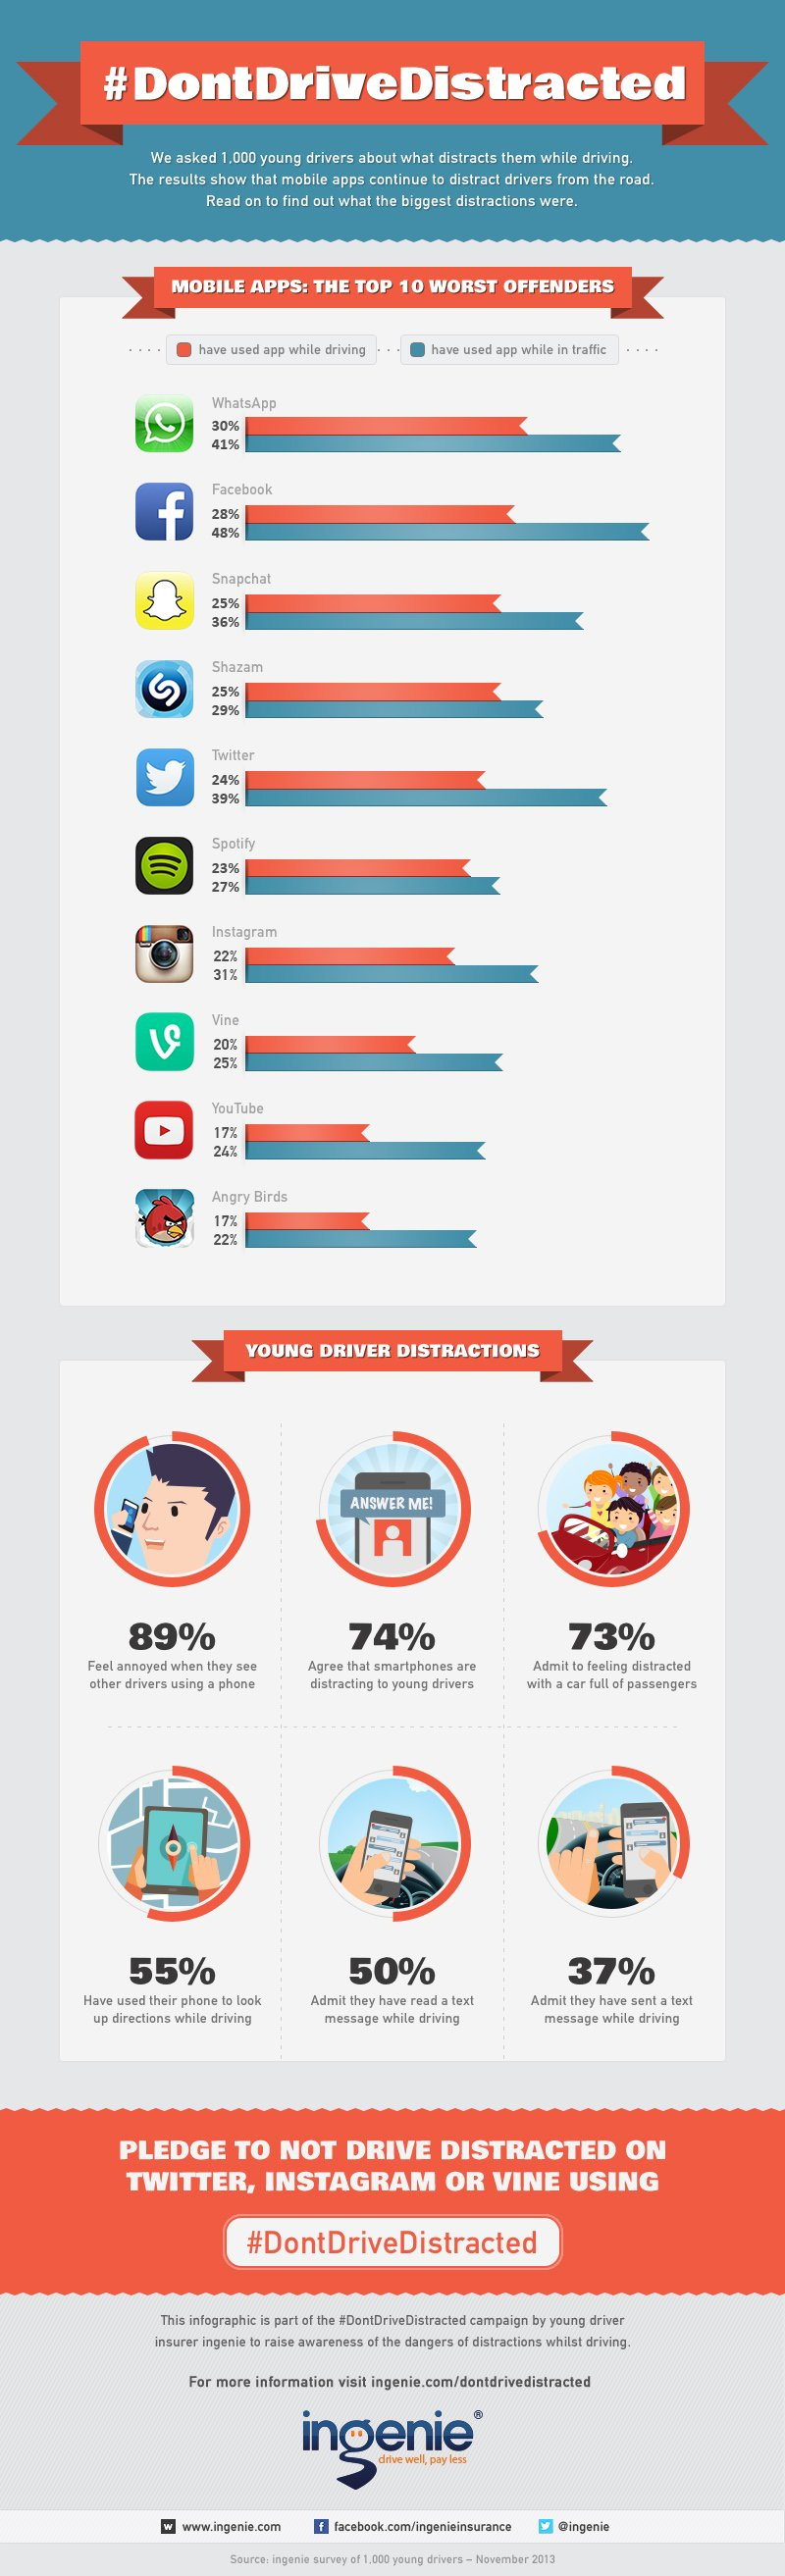 10 Most Distracting Smartphone Apps While Driving [Infographic]